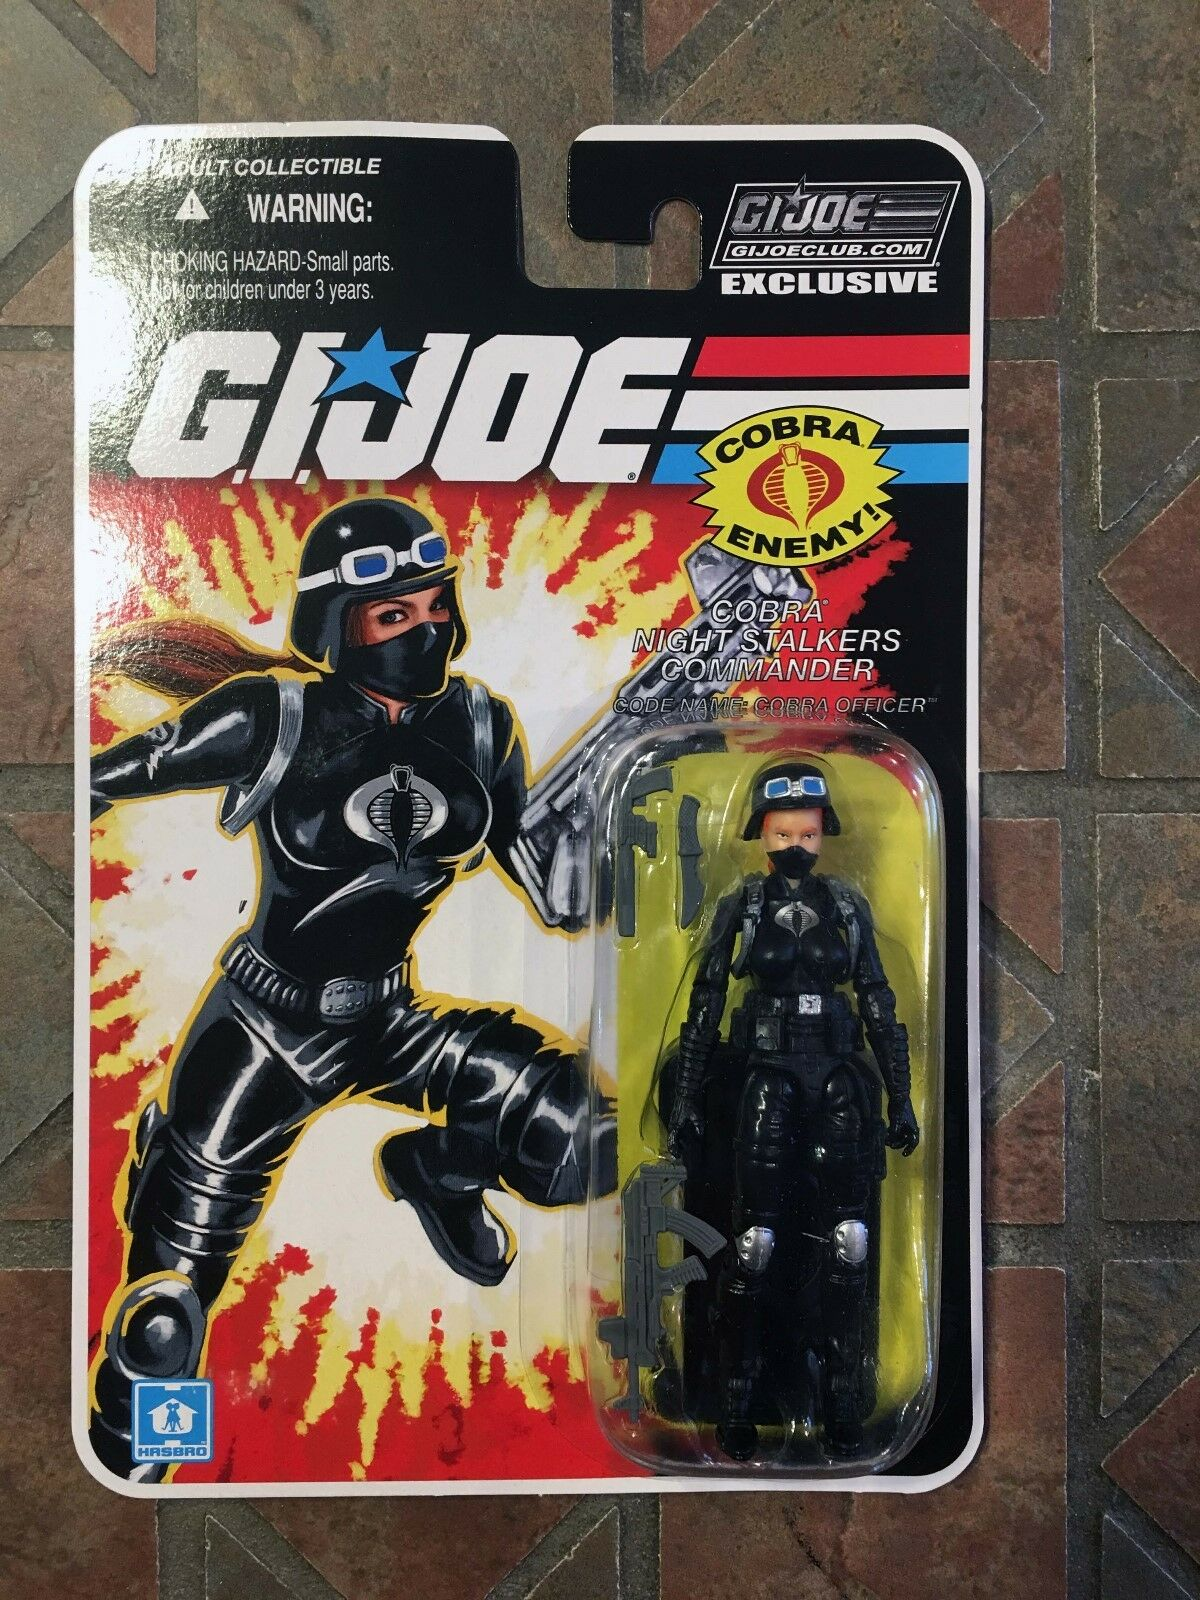 Gi Joe Fss Nightstalker Kommander Offizier 6.0 2017 Collectors Club Figur Cobra